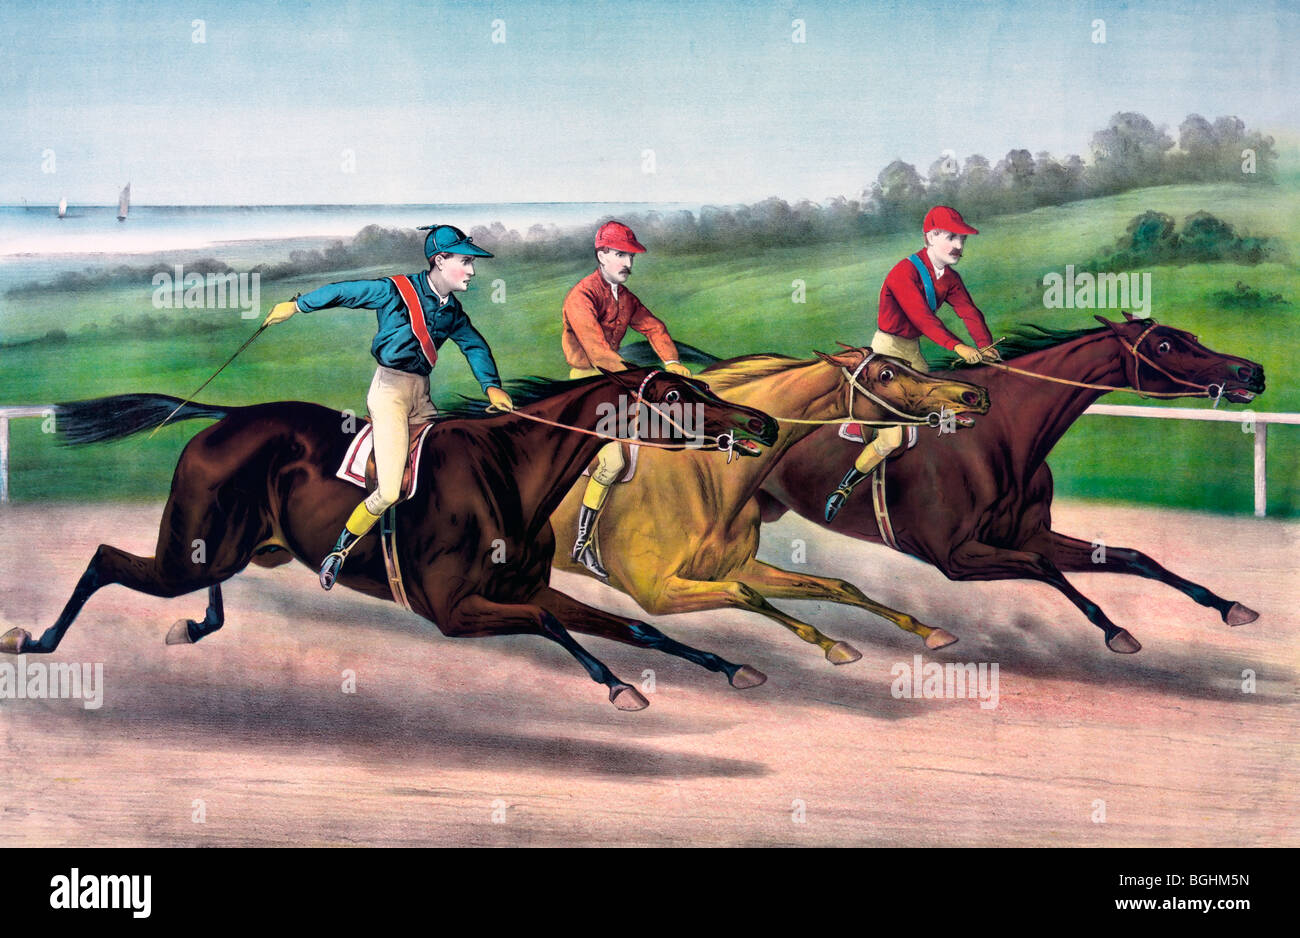 A close lap on the run in - Horse Racing, 1886 Stock Photo